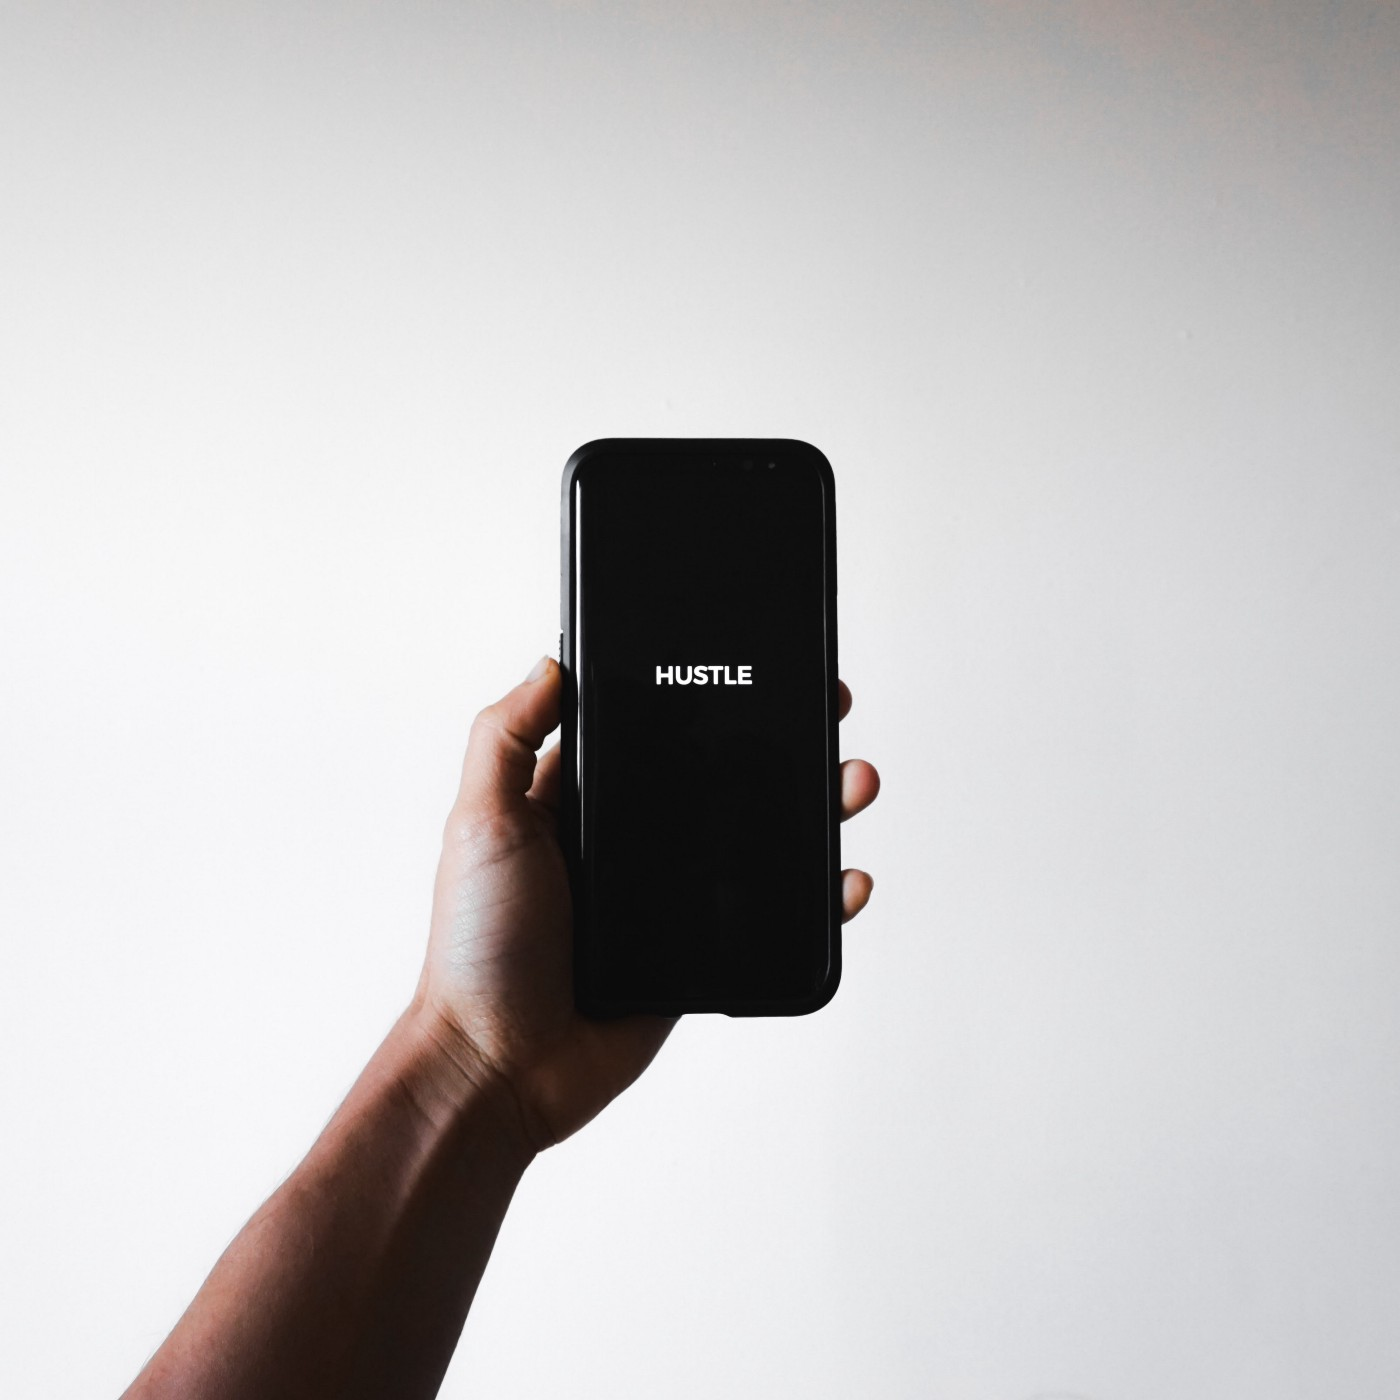 Smartphone displaying the word Hustle on a black screen.